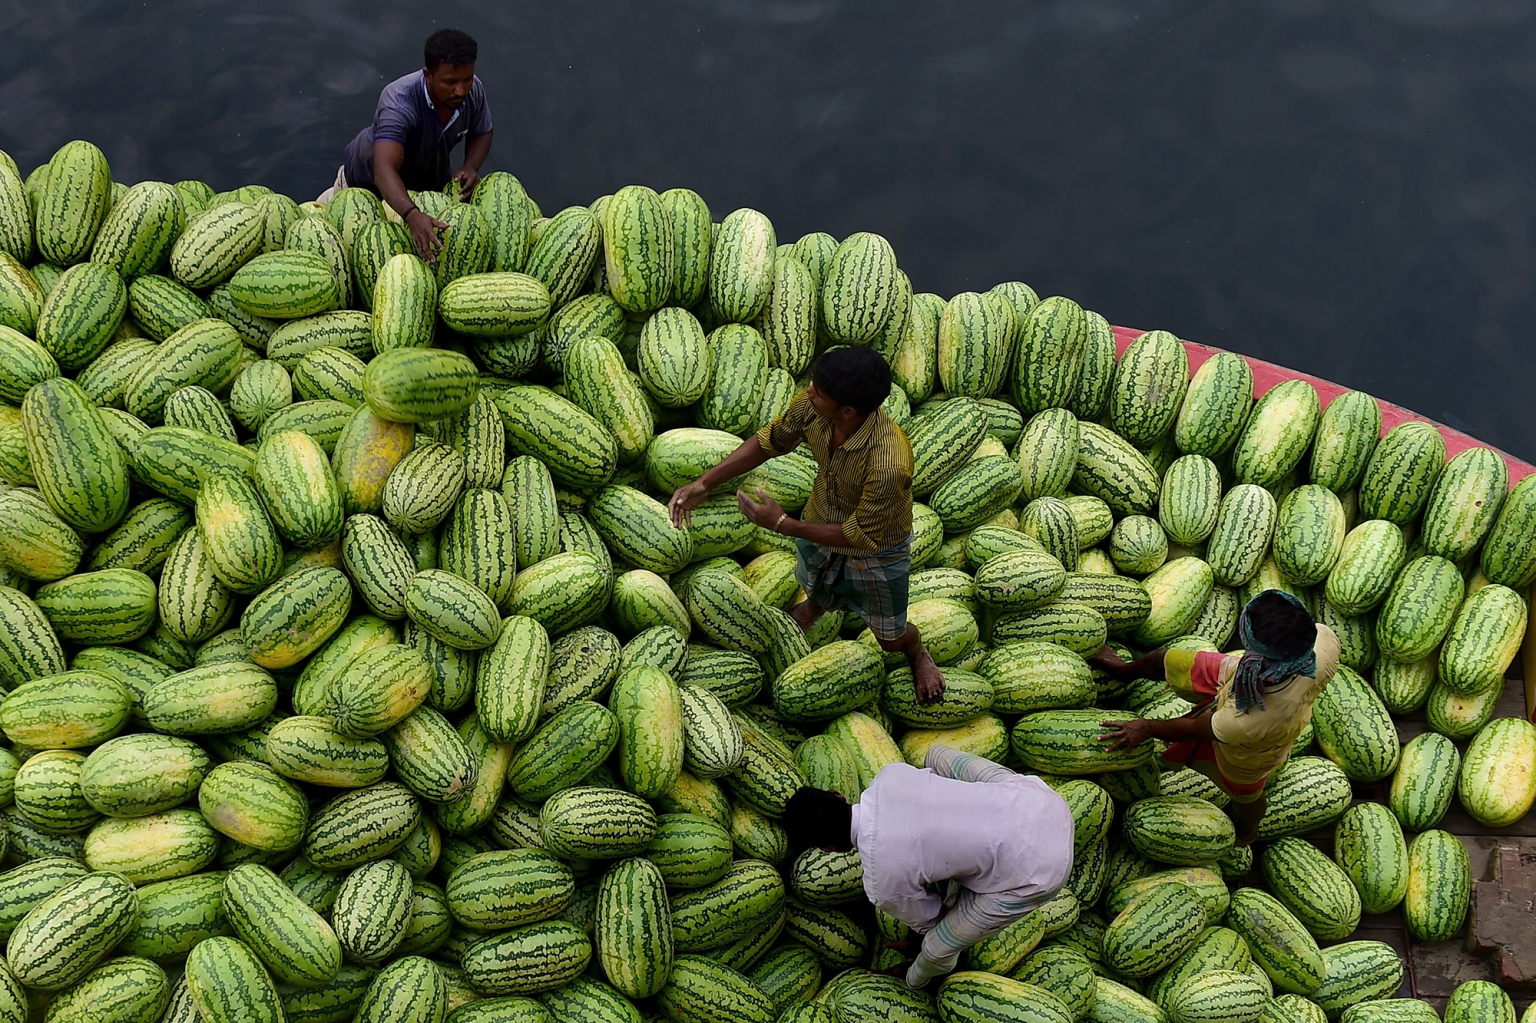 Bangladeshi workers unload watermelons from a boat in the Buriganga River on April 29. Hundreds of vendors from the countryside come to the Bangladeshi capital to sell their fruits. MUNIR UZ ZAMAN/AFP/Getty Images